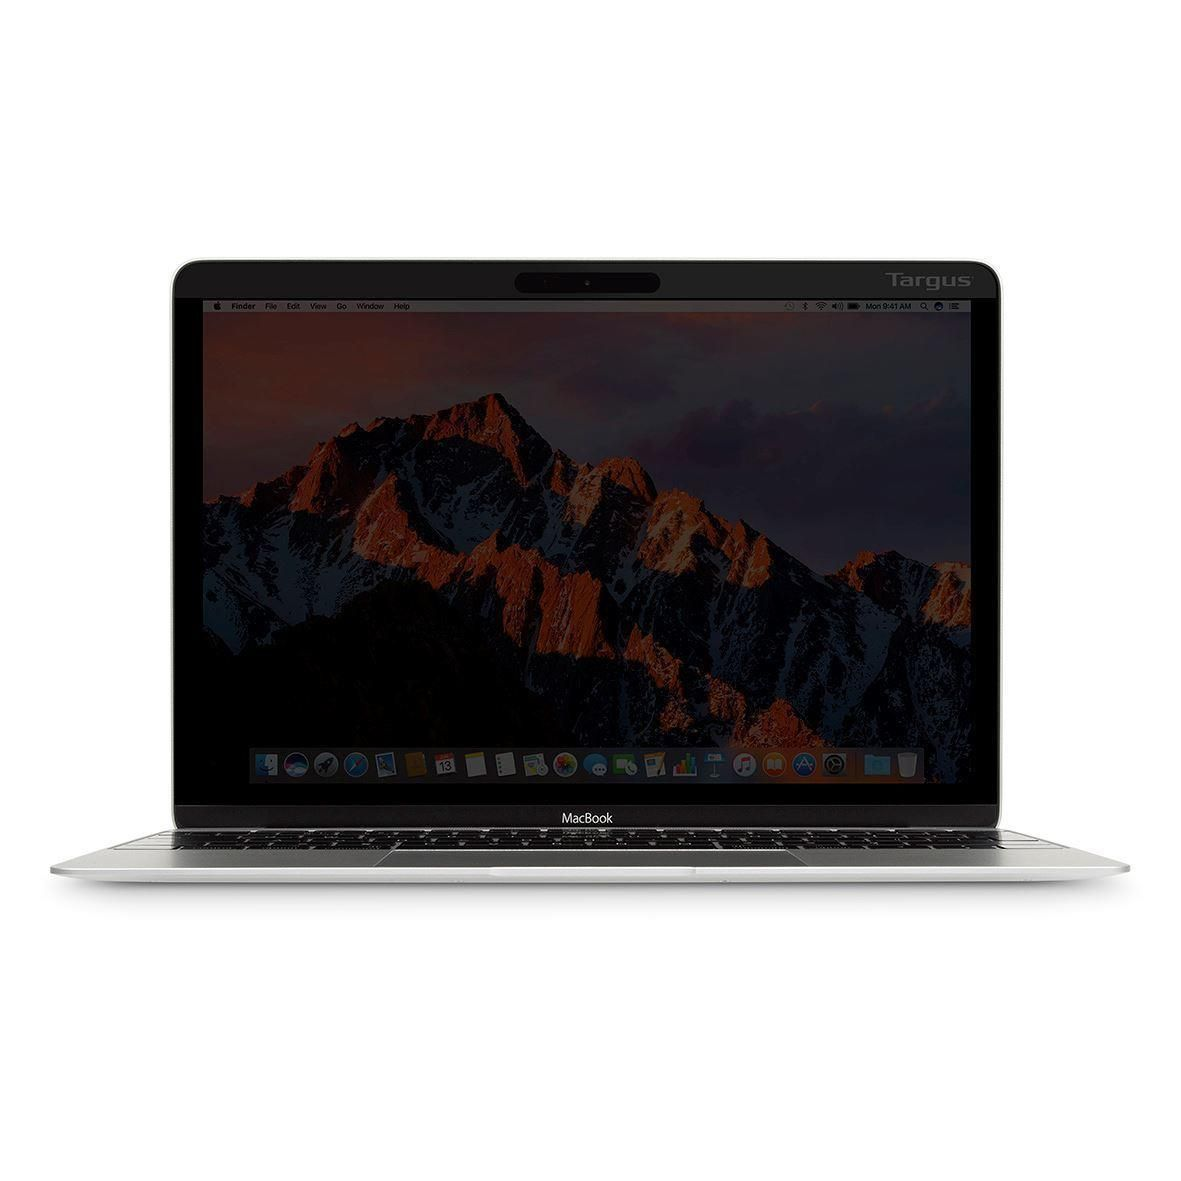 Targus Magnetic Privacy Screen (13.3 inch)  for Macbook (Transparent)